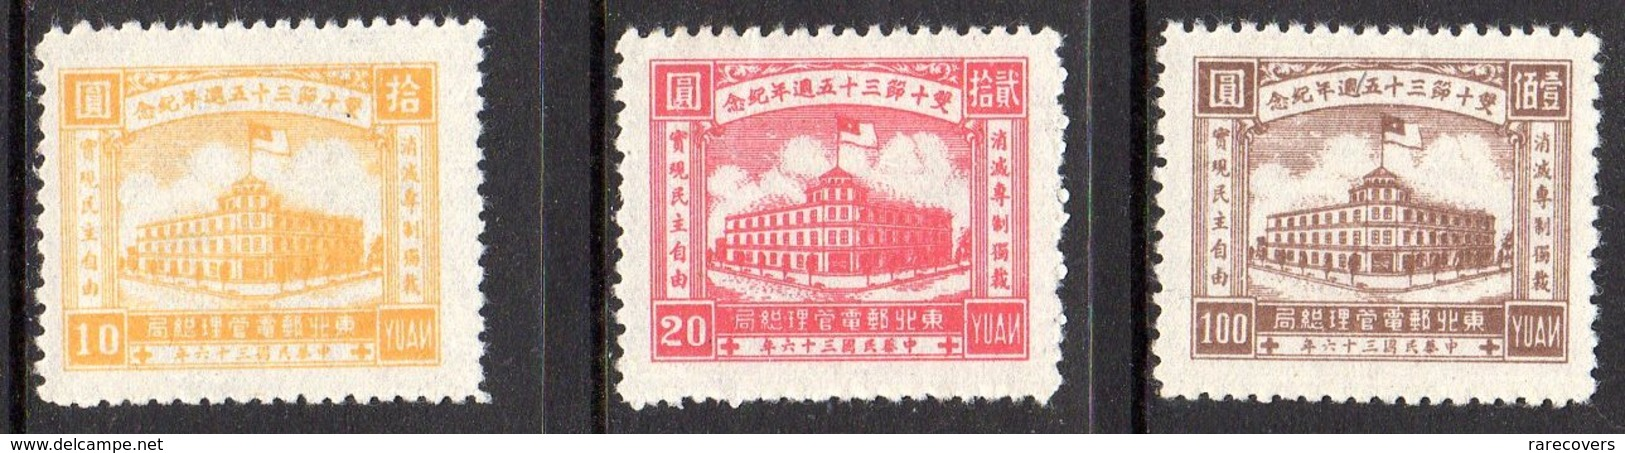 1947 Double Ten' MNH Set Very Fine Yang NE93-5 Privately Barely Offered Anymore &  CERTIFICATE (NE-29) - North-Eastern 1946-48